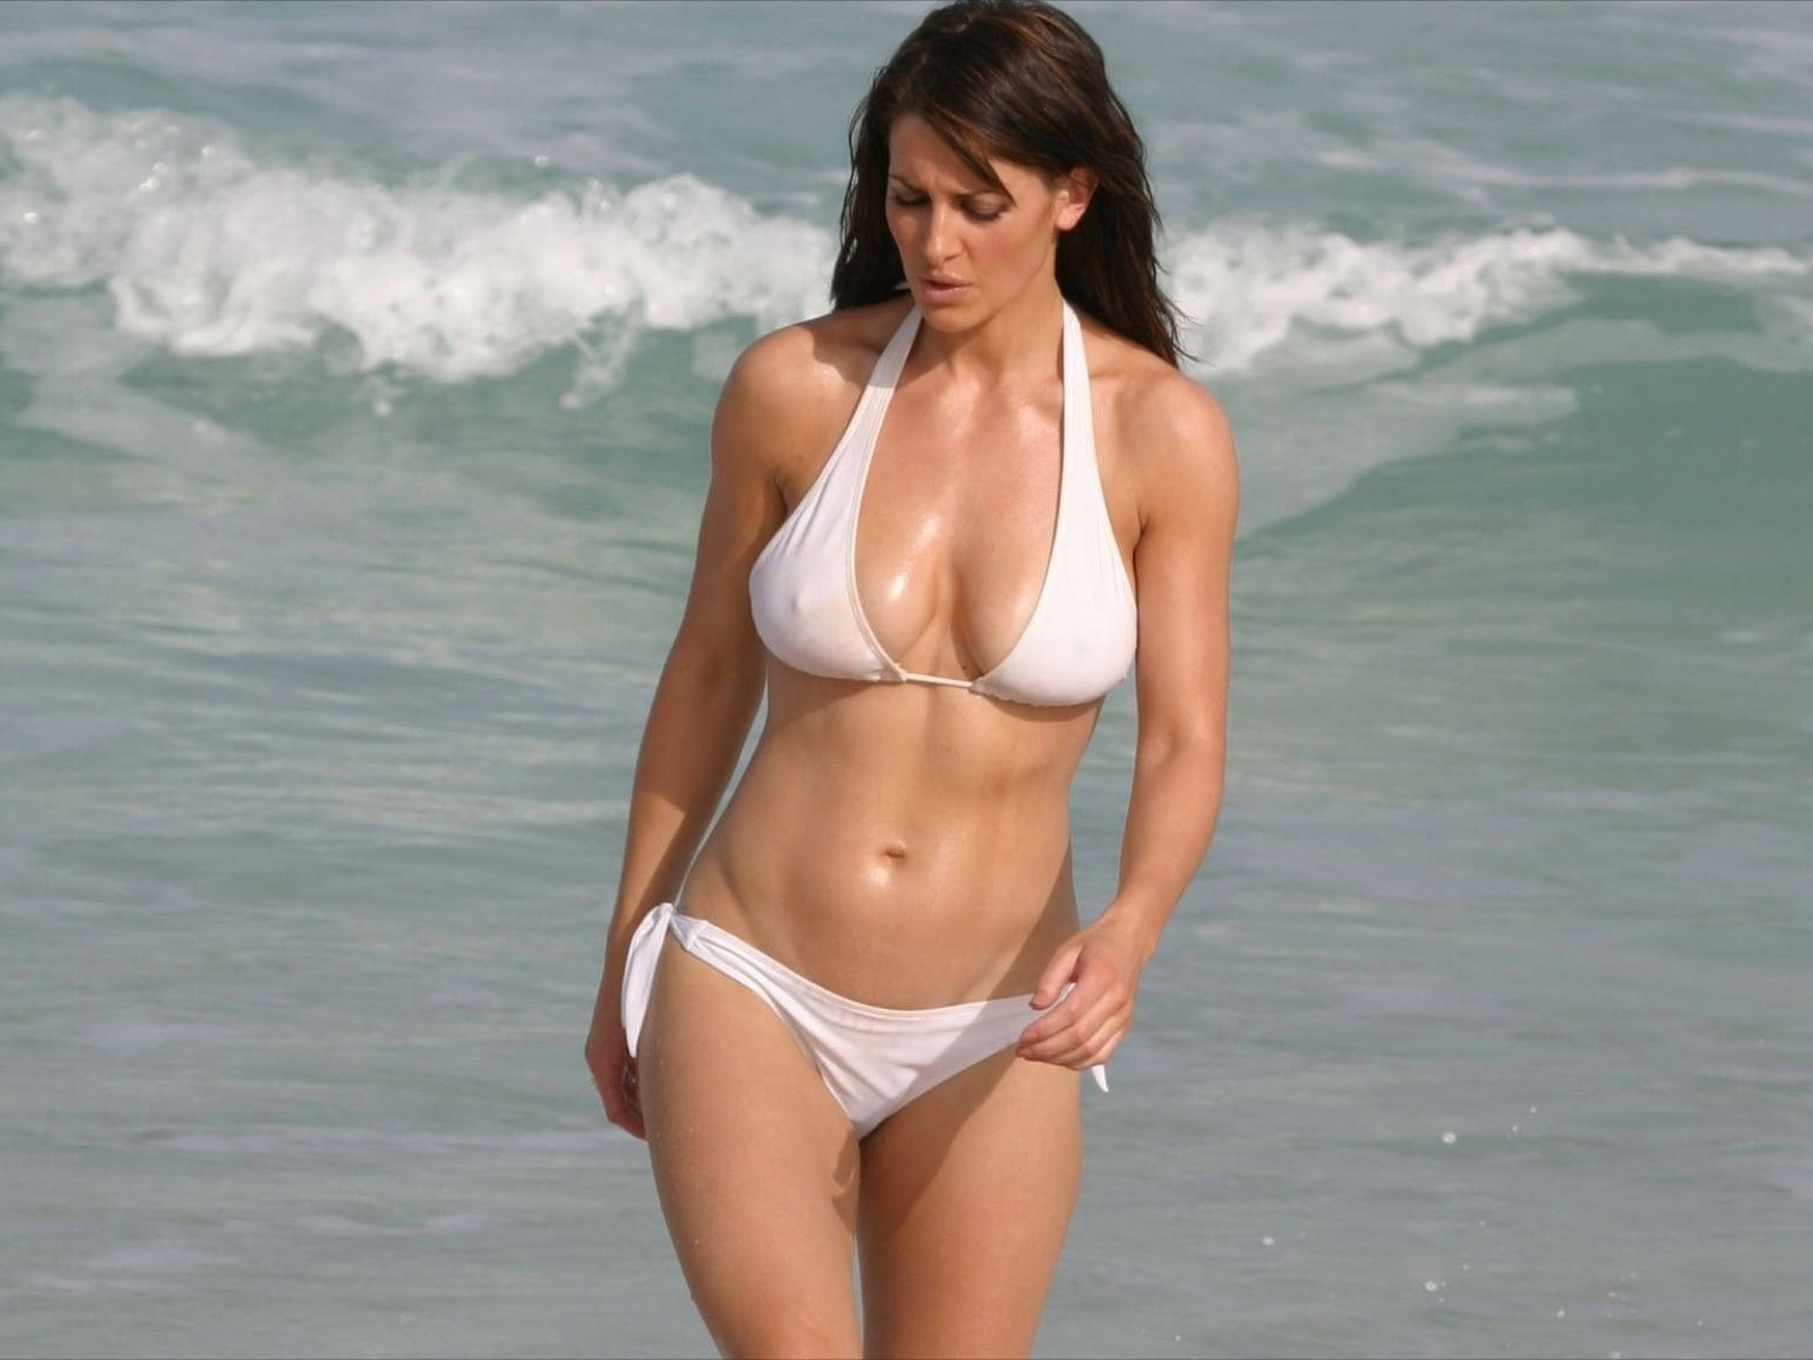 Kirsty Gallacher shows off her hot body wearing black and white ...: www.celeb6free.com/pics/celeb0679/kirsty_gallacher_pussies...